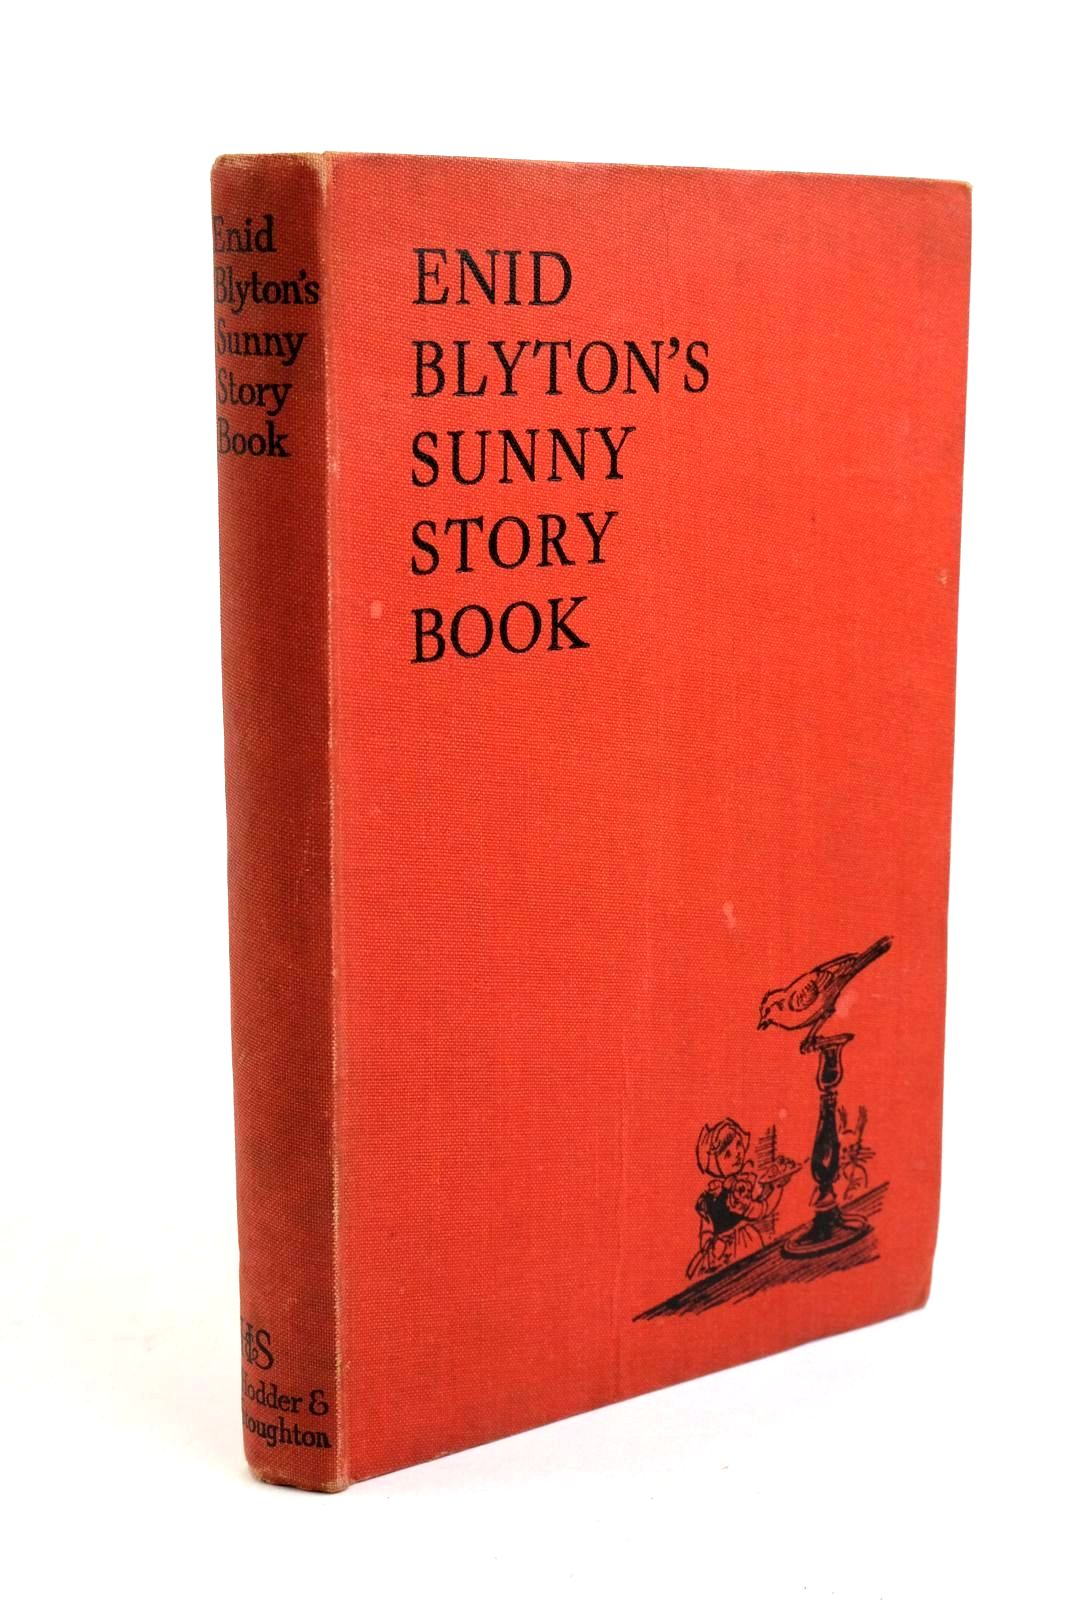 Photo of ENID BLYTON'S SUNNY STORY BOOK written by Blyton, Enid illustrated by Soper, Eileen published by Hodder & Stoughton (STOCK CODE: 1321813)  for sale by Stella & Rose's Books